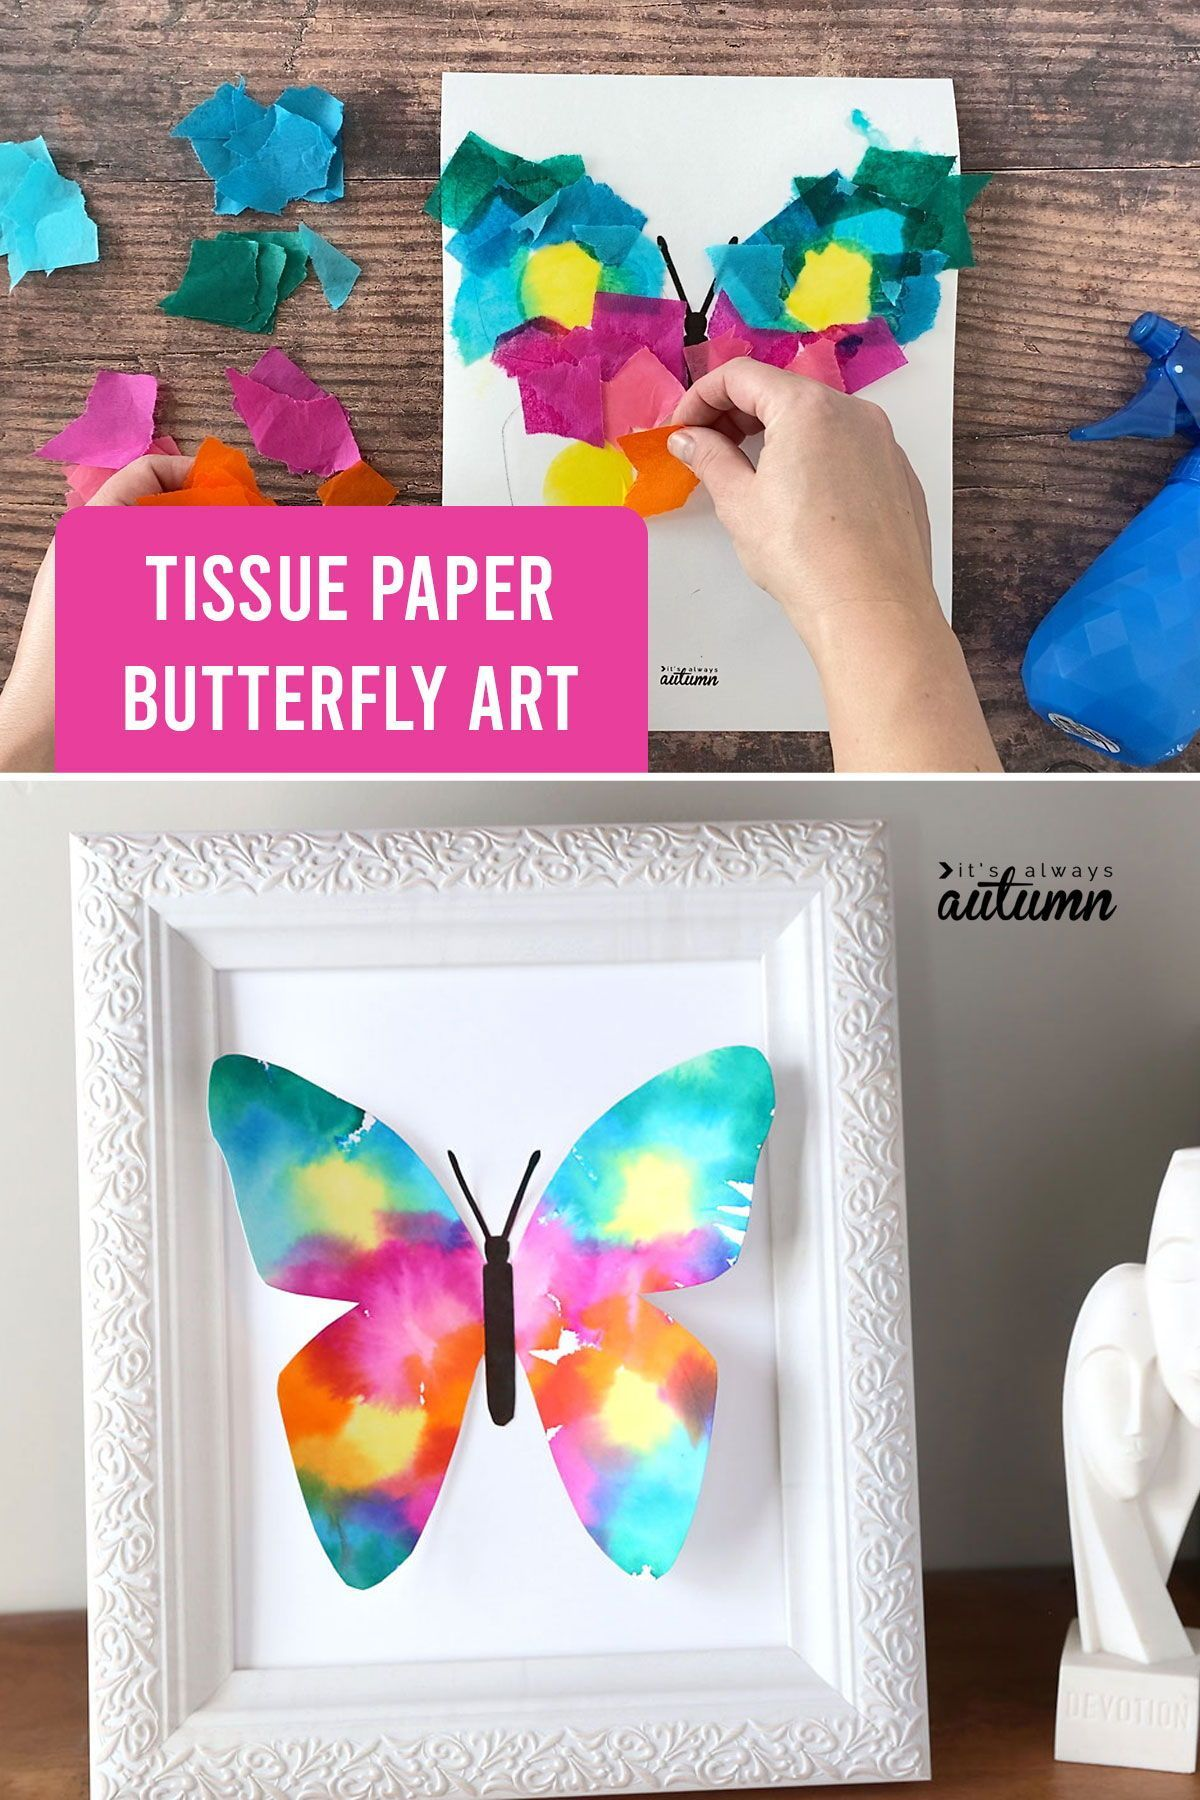 This beautiful butterfly art is made with bleeding tissue paper. It's a fun kid art project that turns out pretty enough to frame!